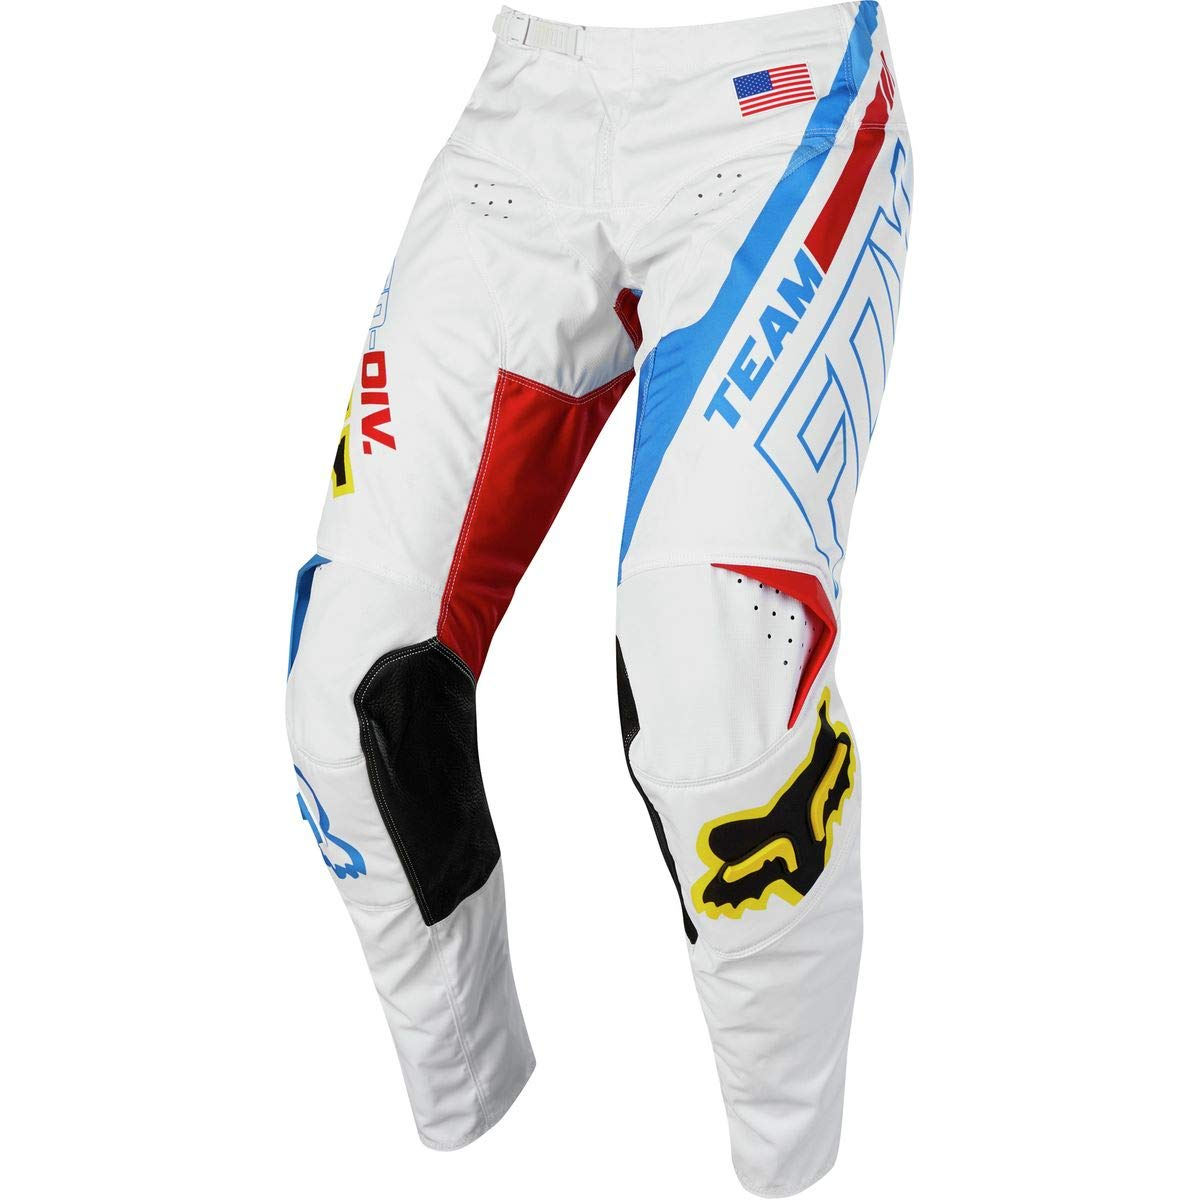 Fox Racing 2018 Youth 180 Pants - Red White & True SE (22) 20850-574-22